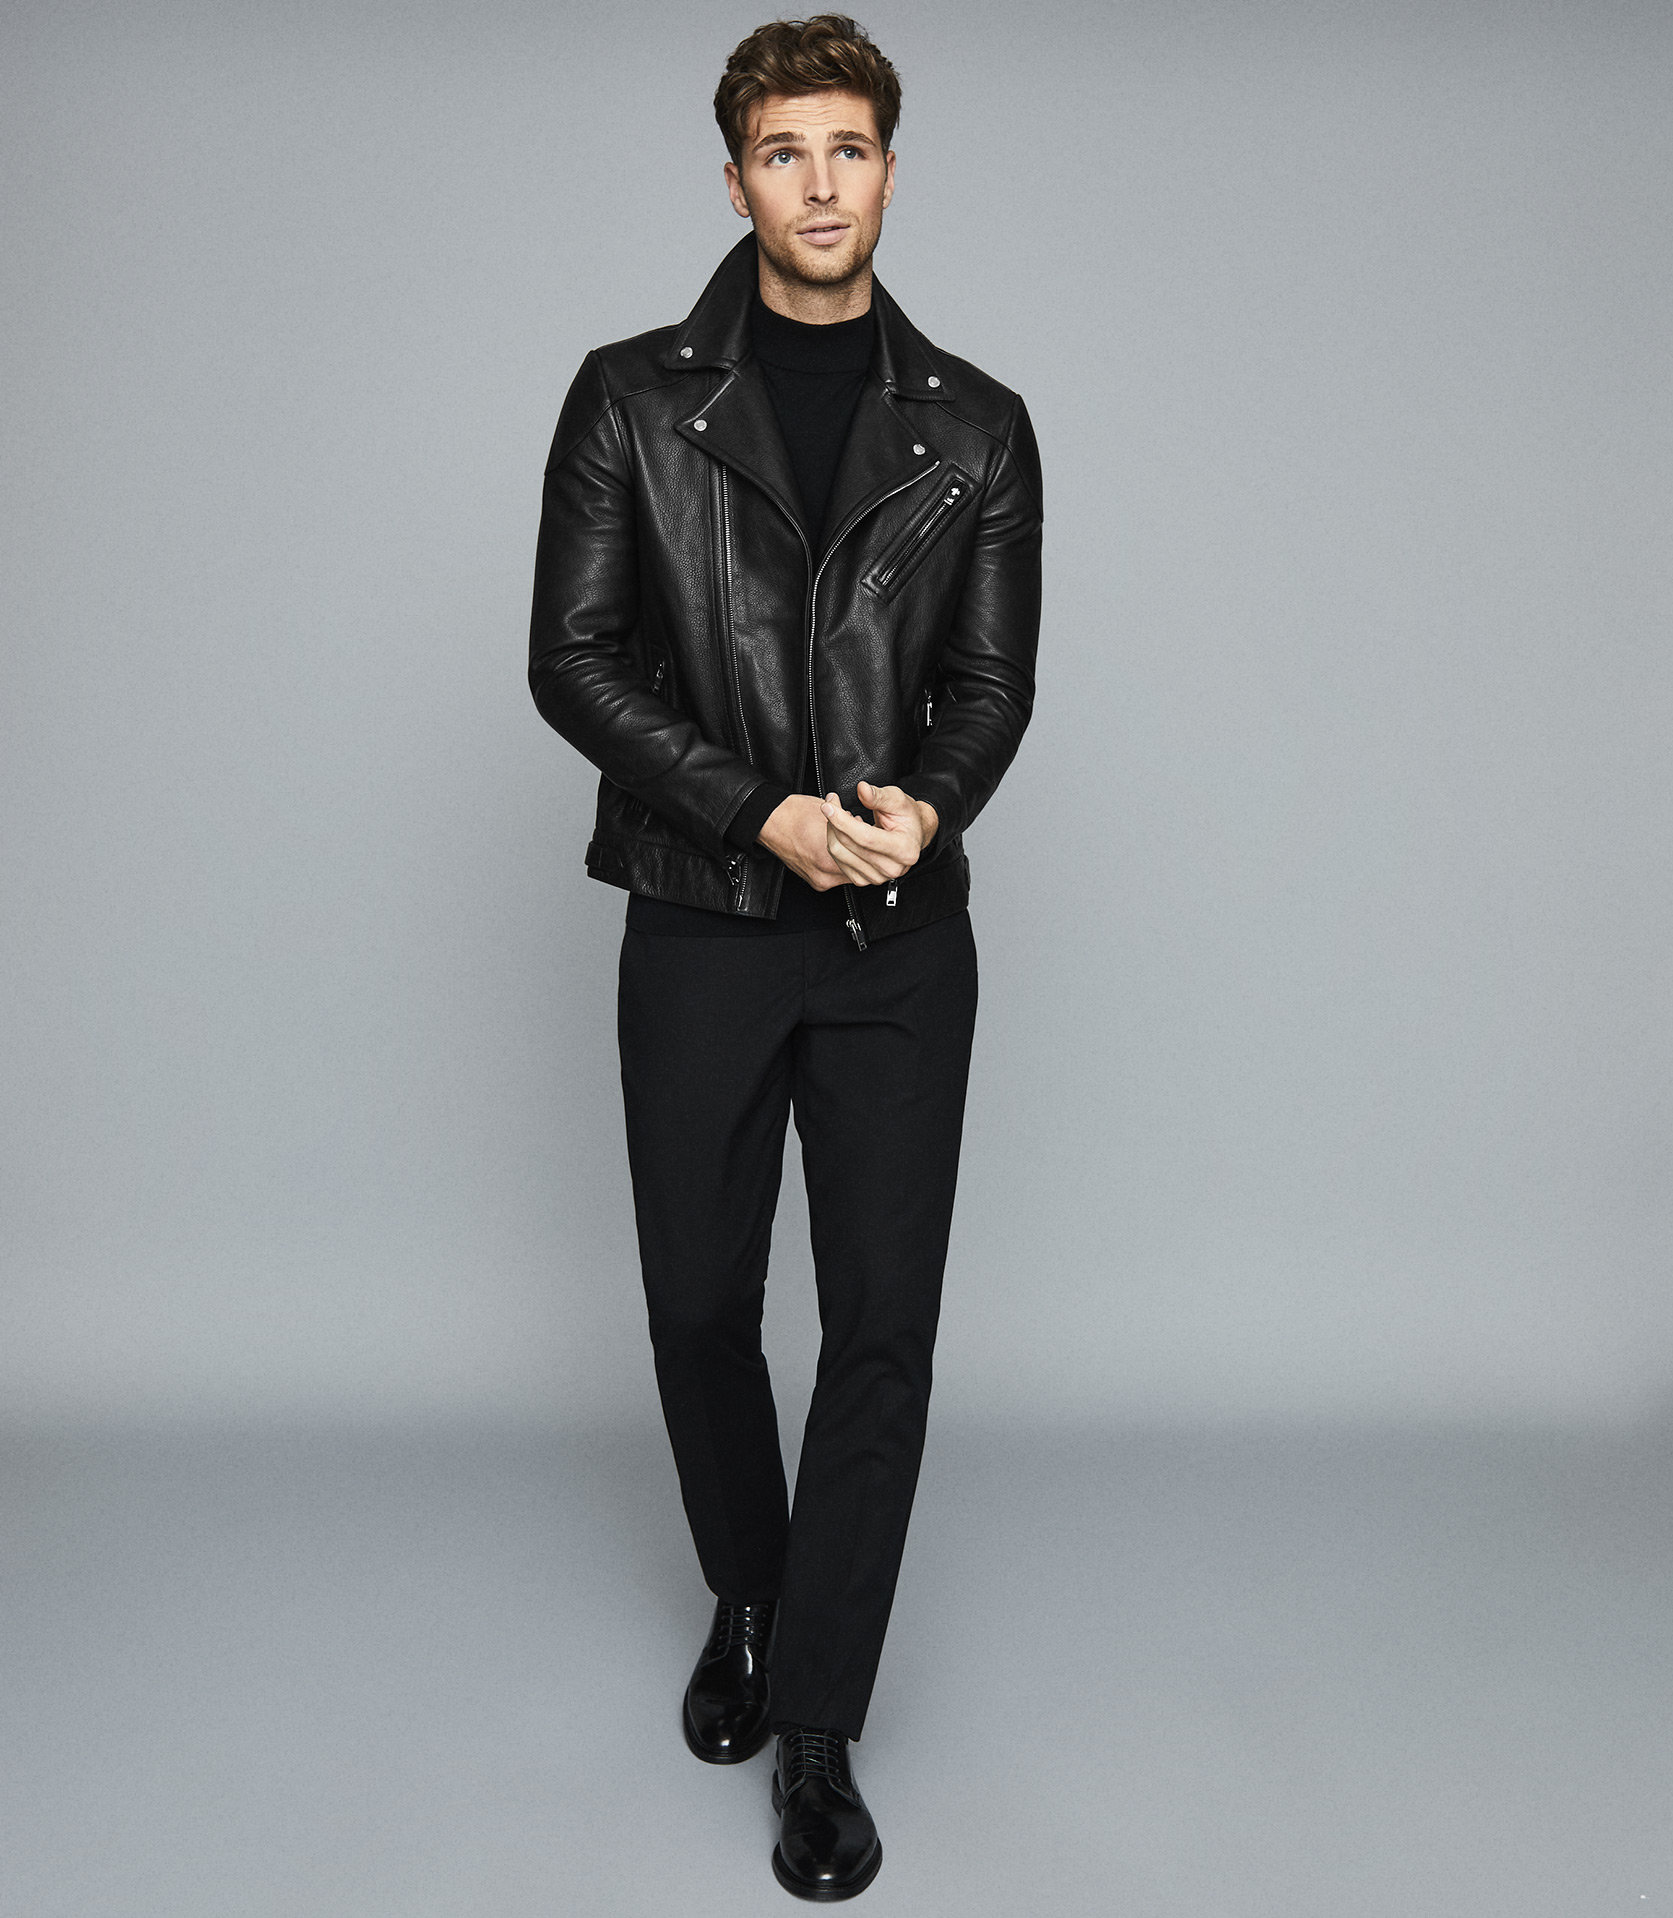 A man modelling a leather jacket - a Christmas Gifts for HIM that YOU will LOVE